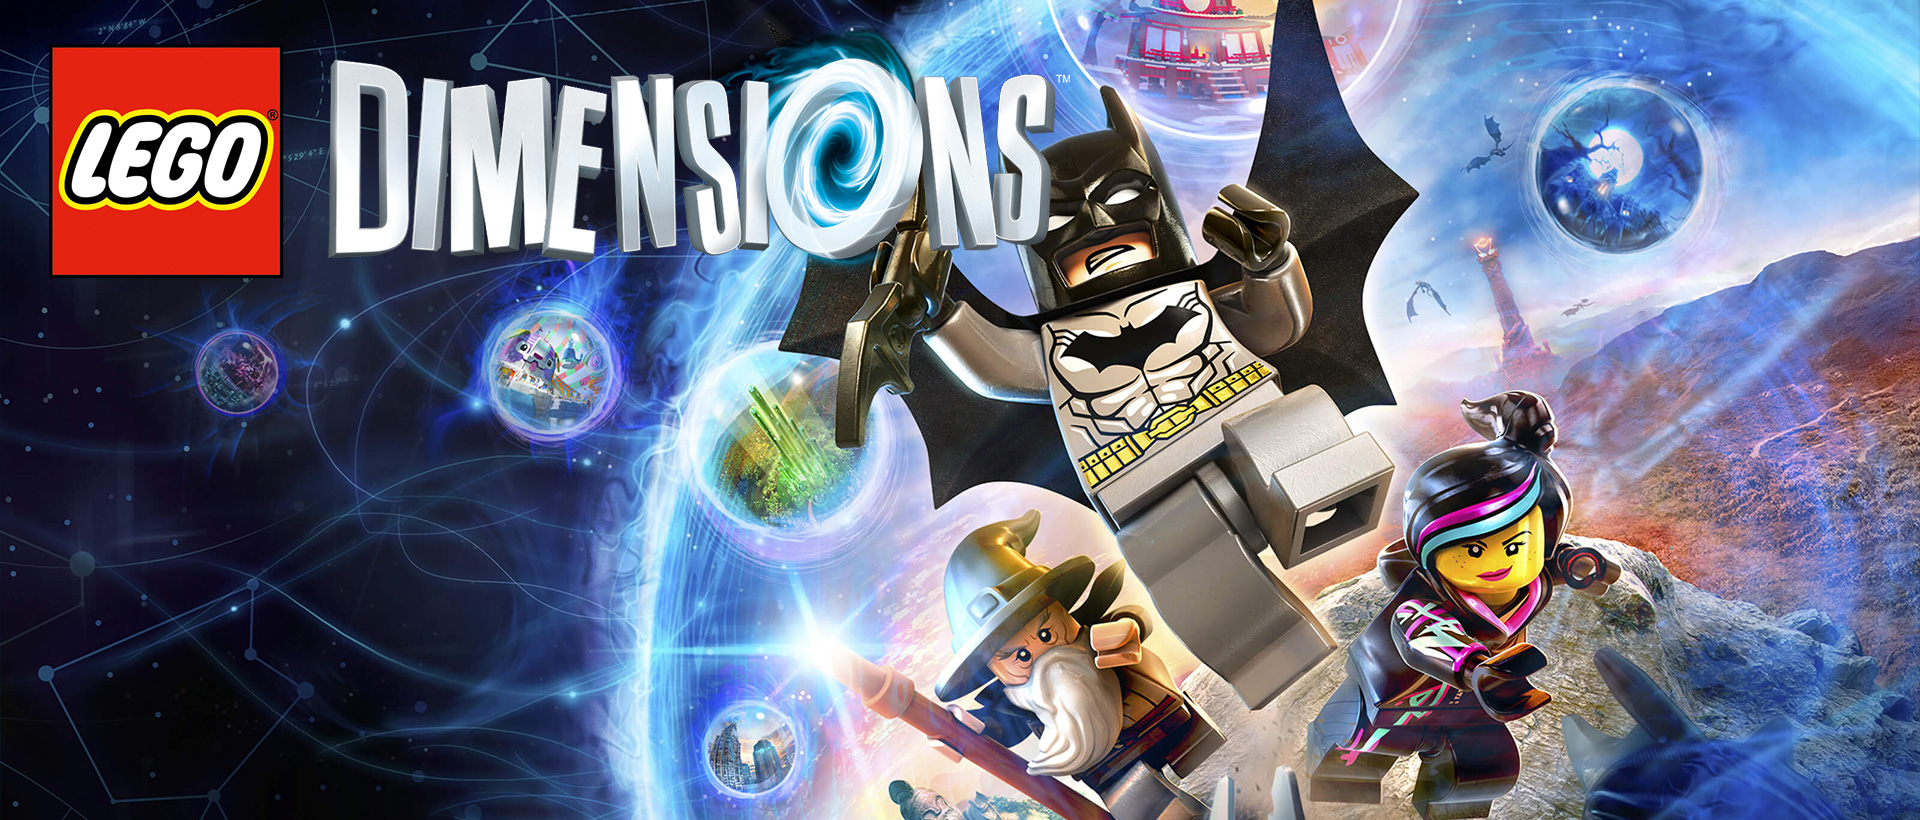 View more info on LEGO Dimensions